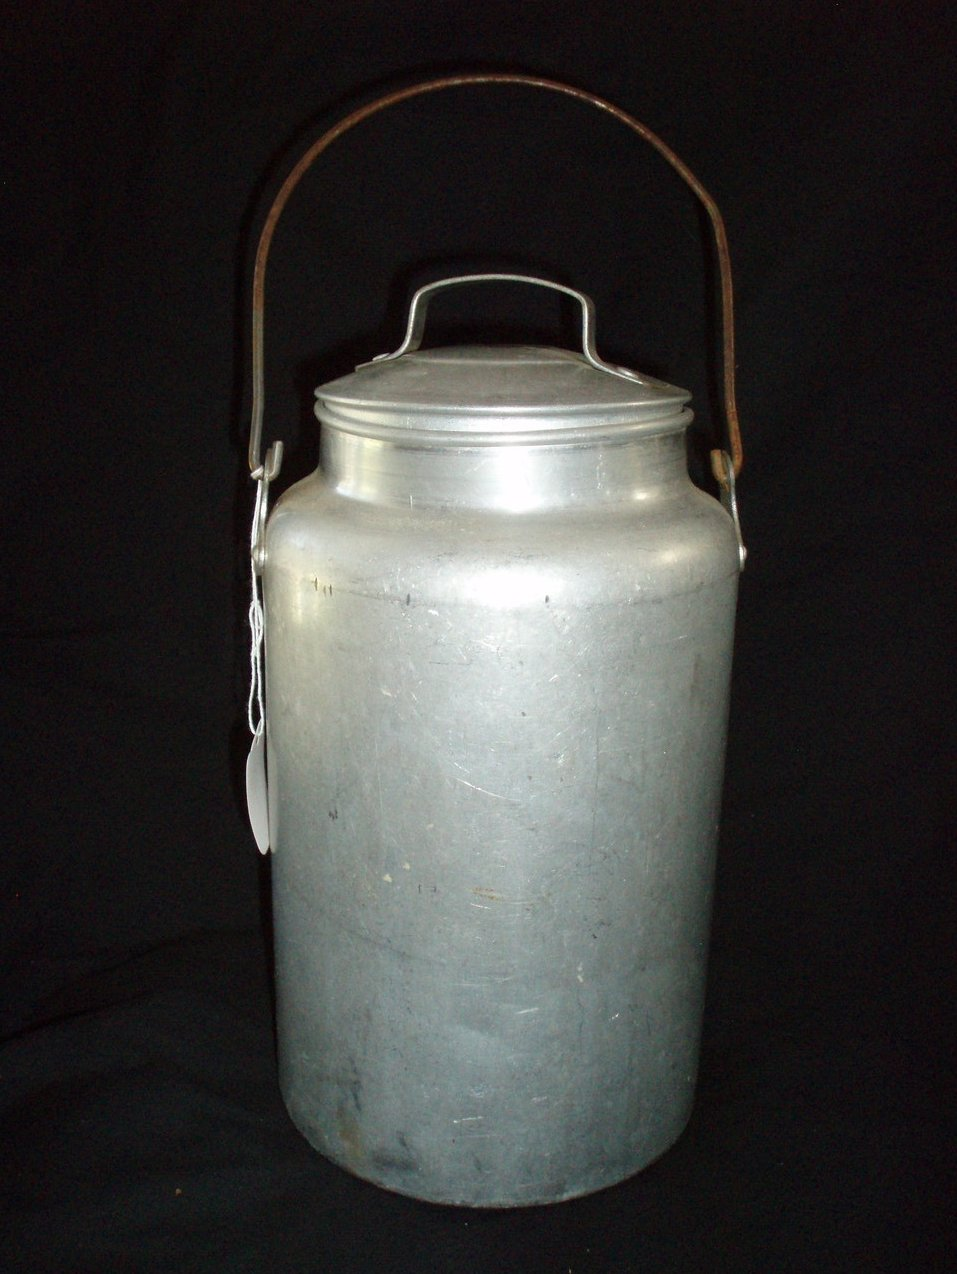 Leyse 4 quart Aluminum Cream Milk Can Vintage